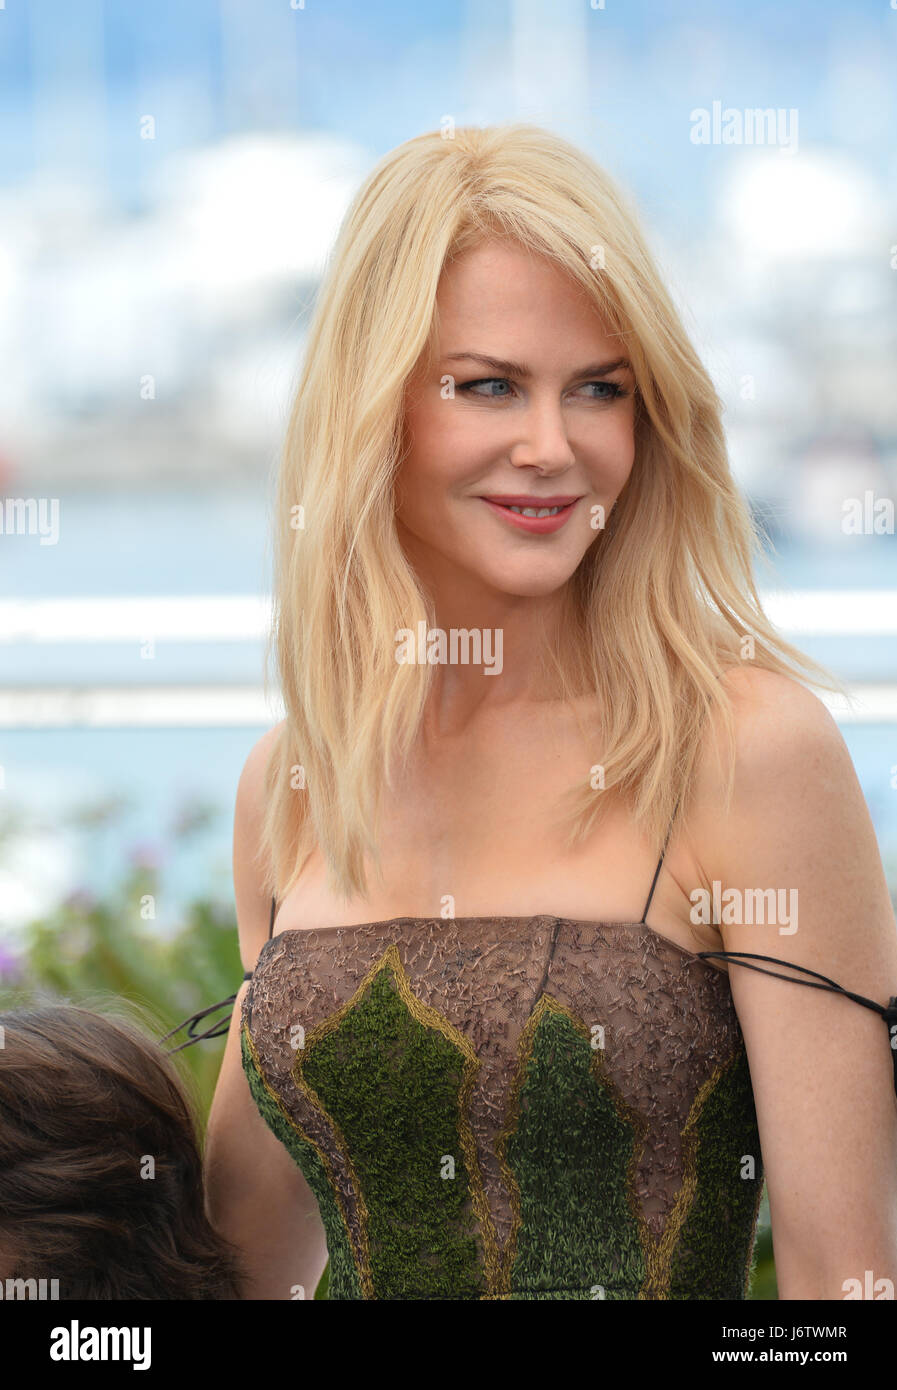 "Cannes, France. 22nd May, 2017. Nicole Kidman at the photocall for ""The Killing of a Sacred Deer"" at the 70th Festival Stock Photo"